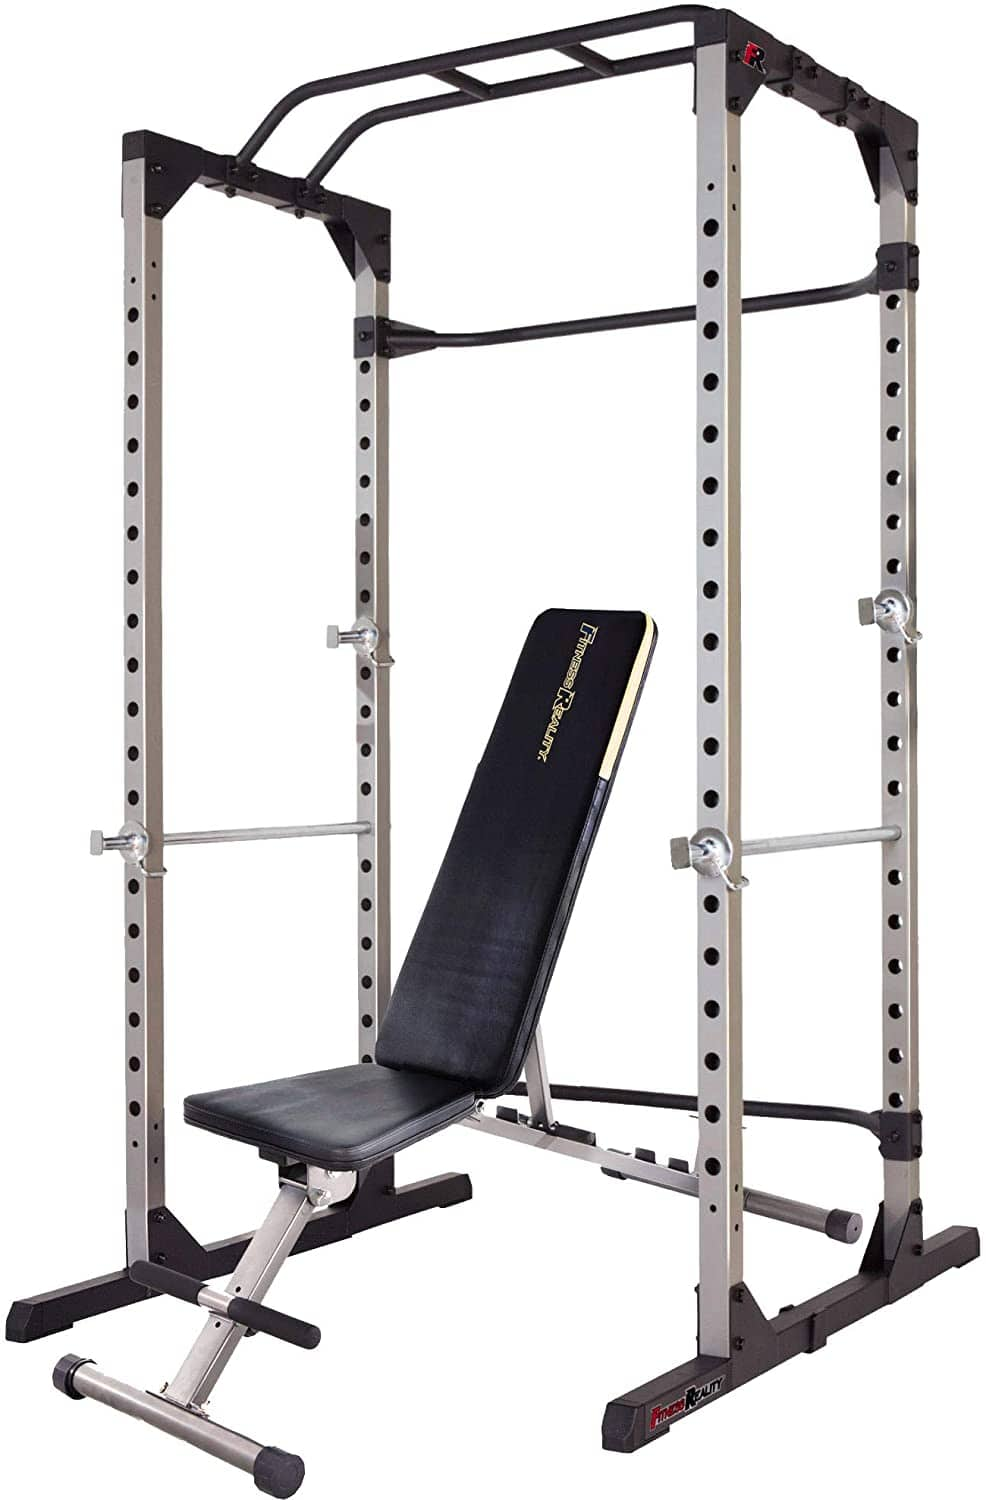 Fitness Reality 810XLT Super Max Power Cage/Squat Rack w/ Adjustible Weight Bench Combo 800 LBs Capacity $339.35